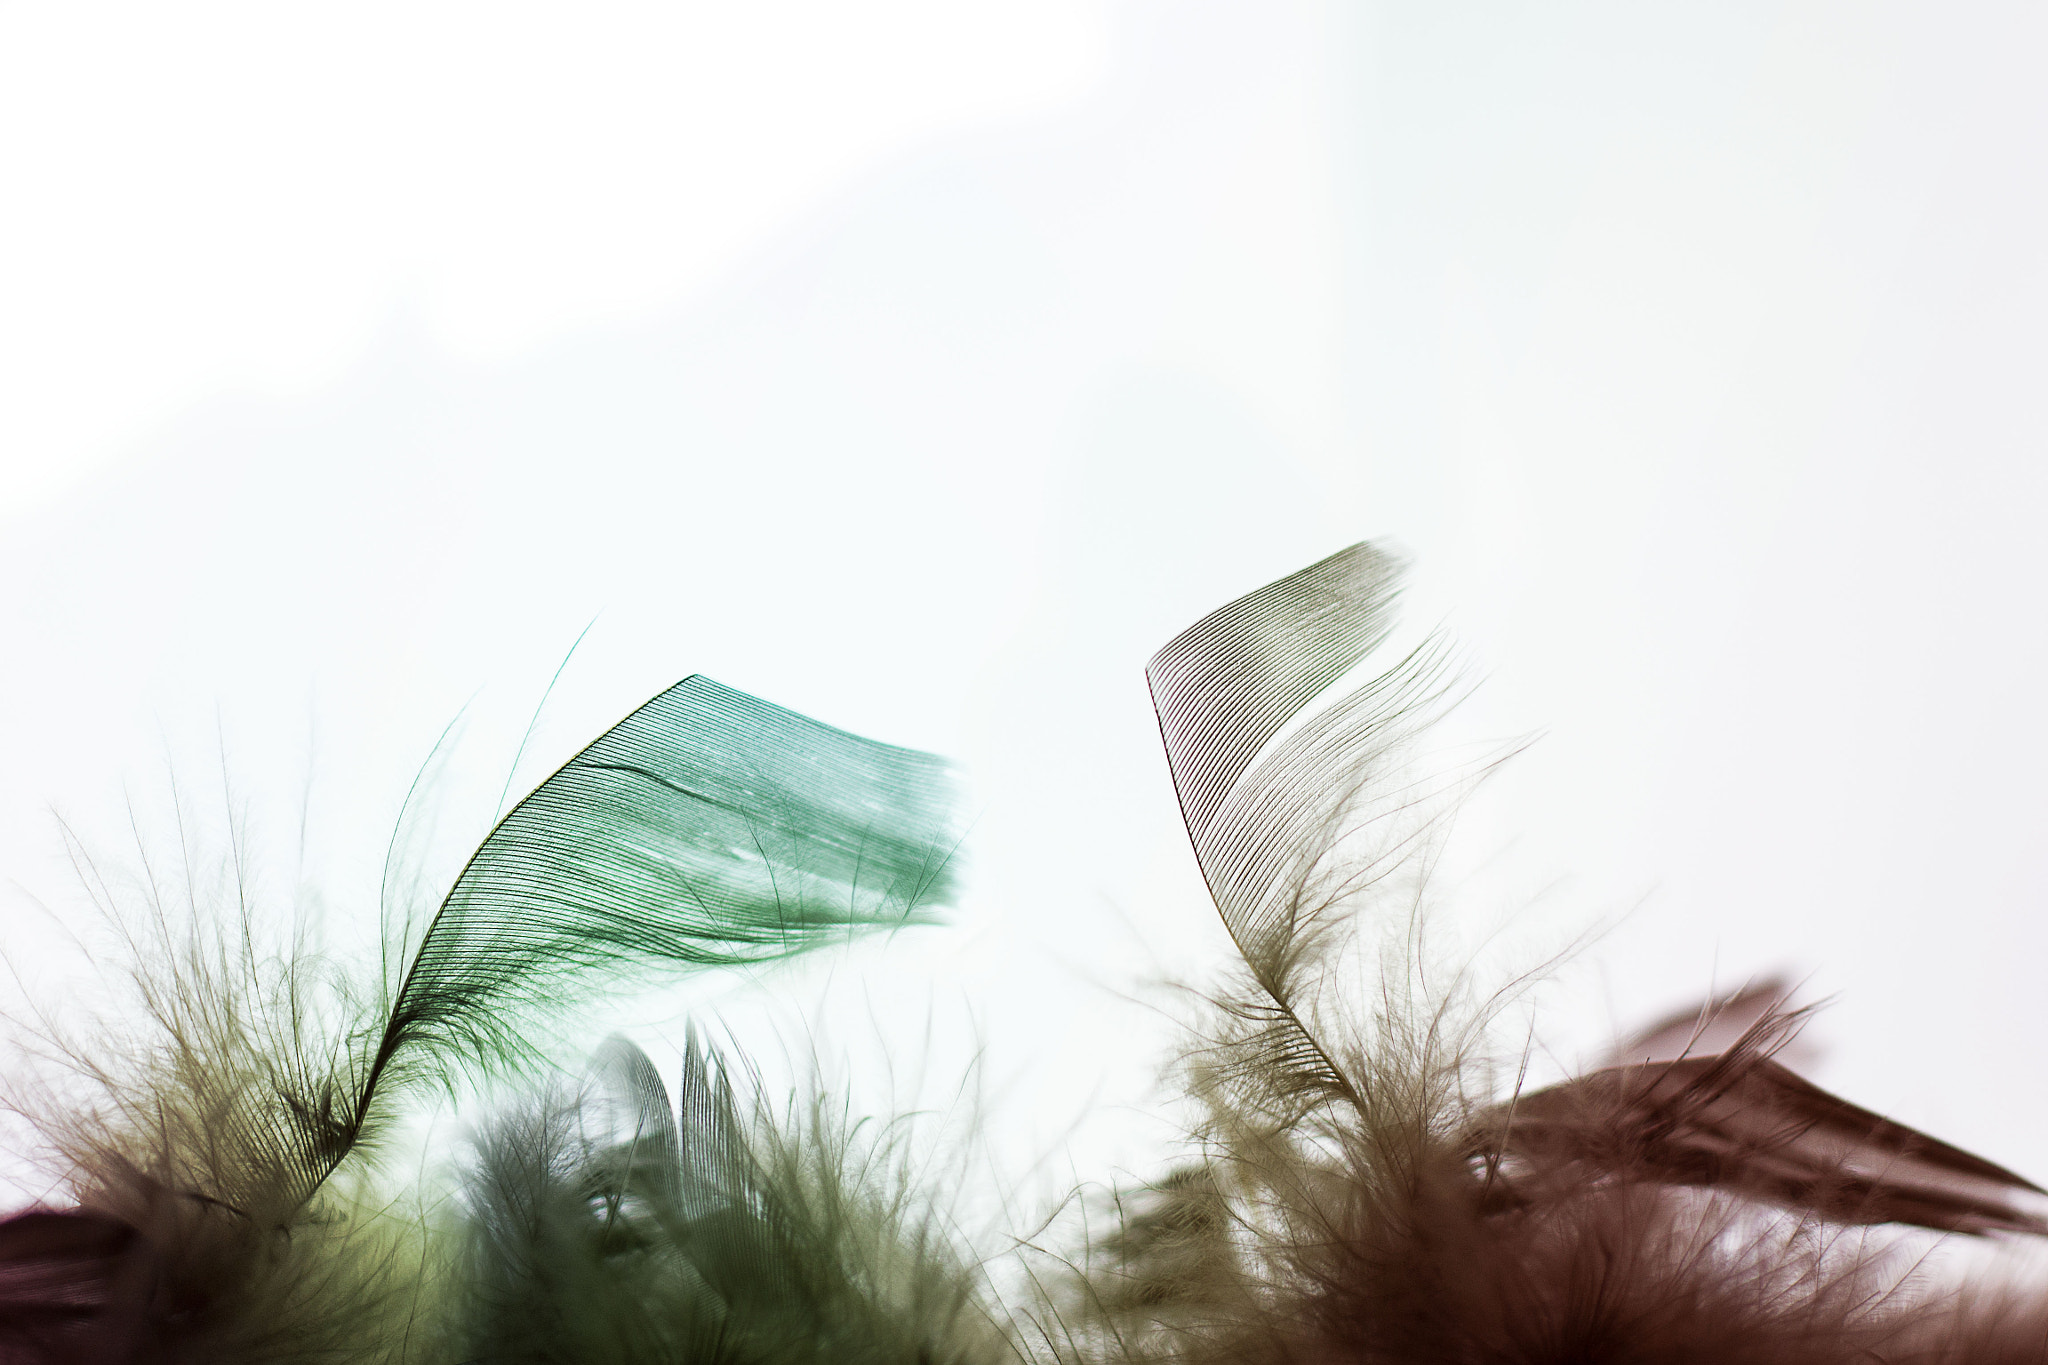 Photograph Colorful Feather 1 by Lorenz B. on 500px